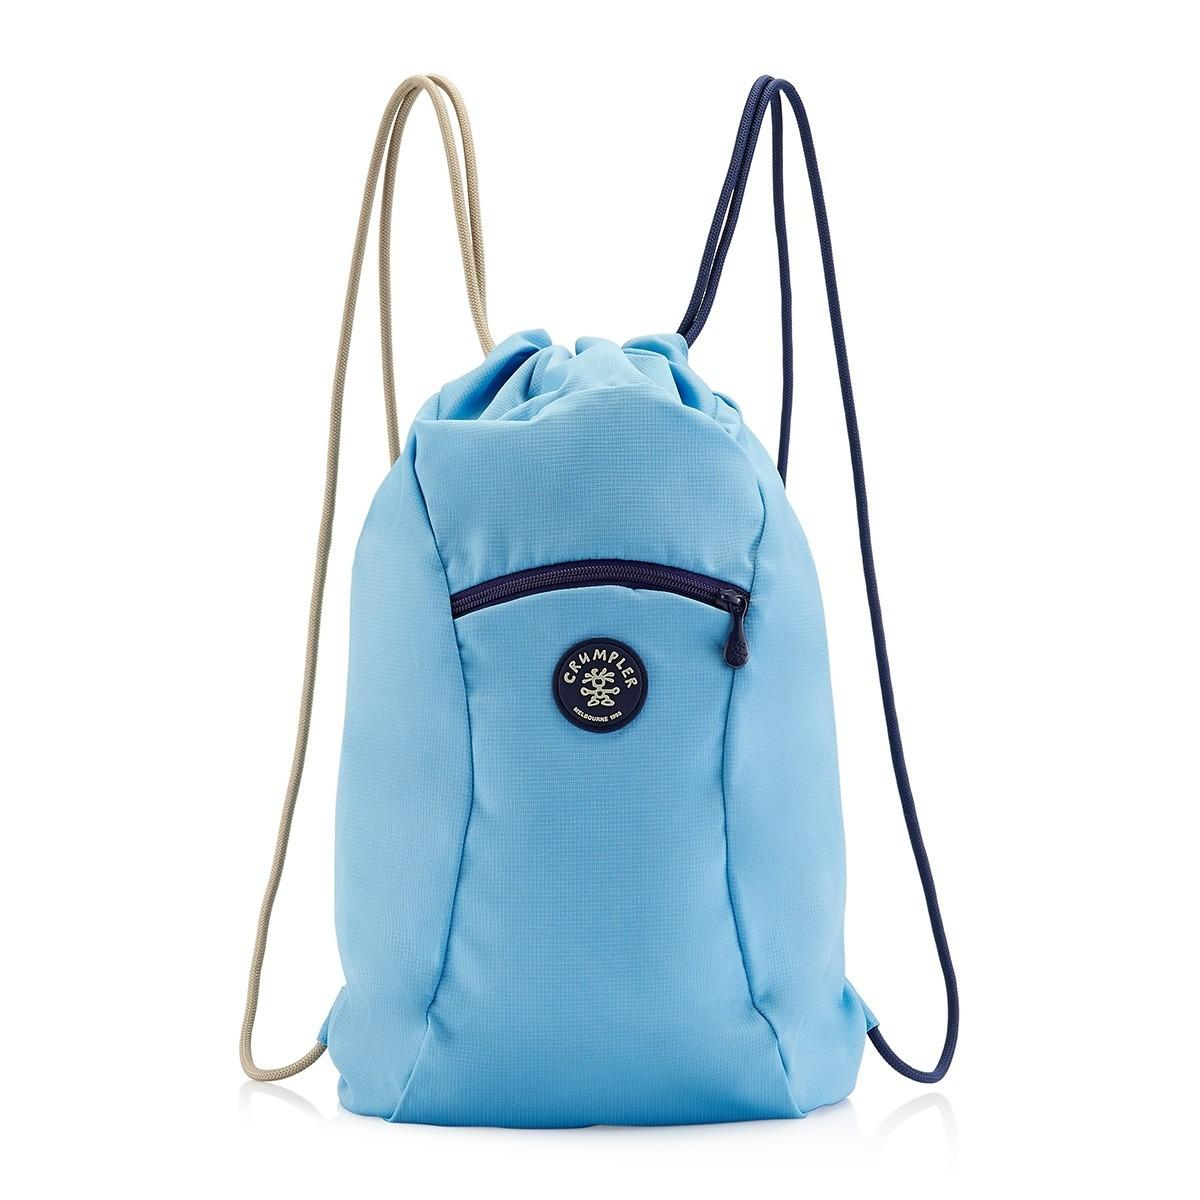 Price Crumpler Squid Drawstring Backpack Sail Blue Online Singapore